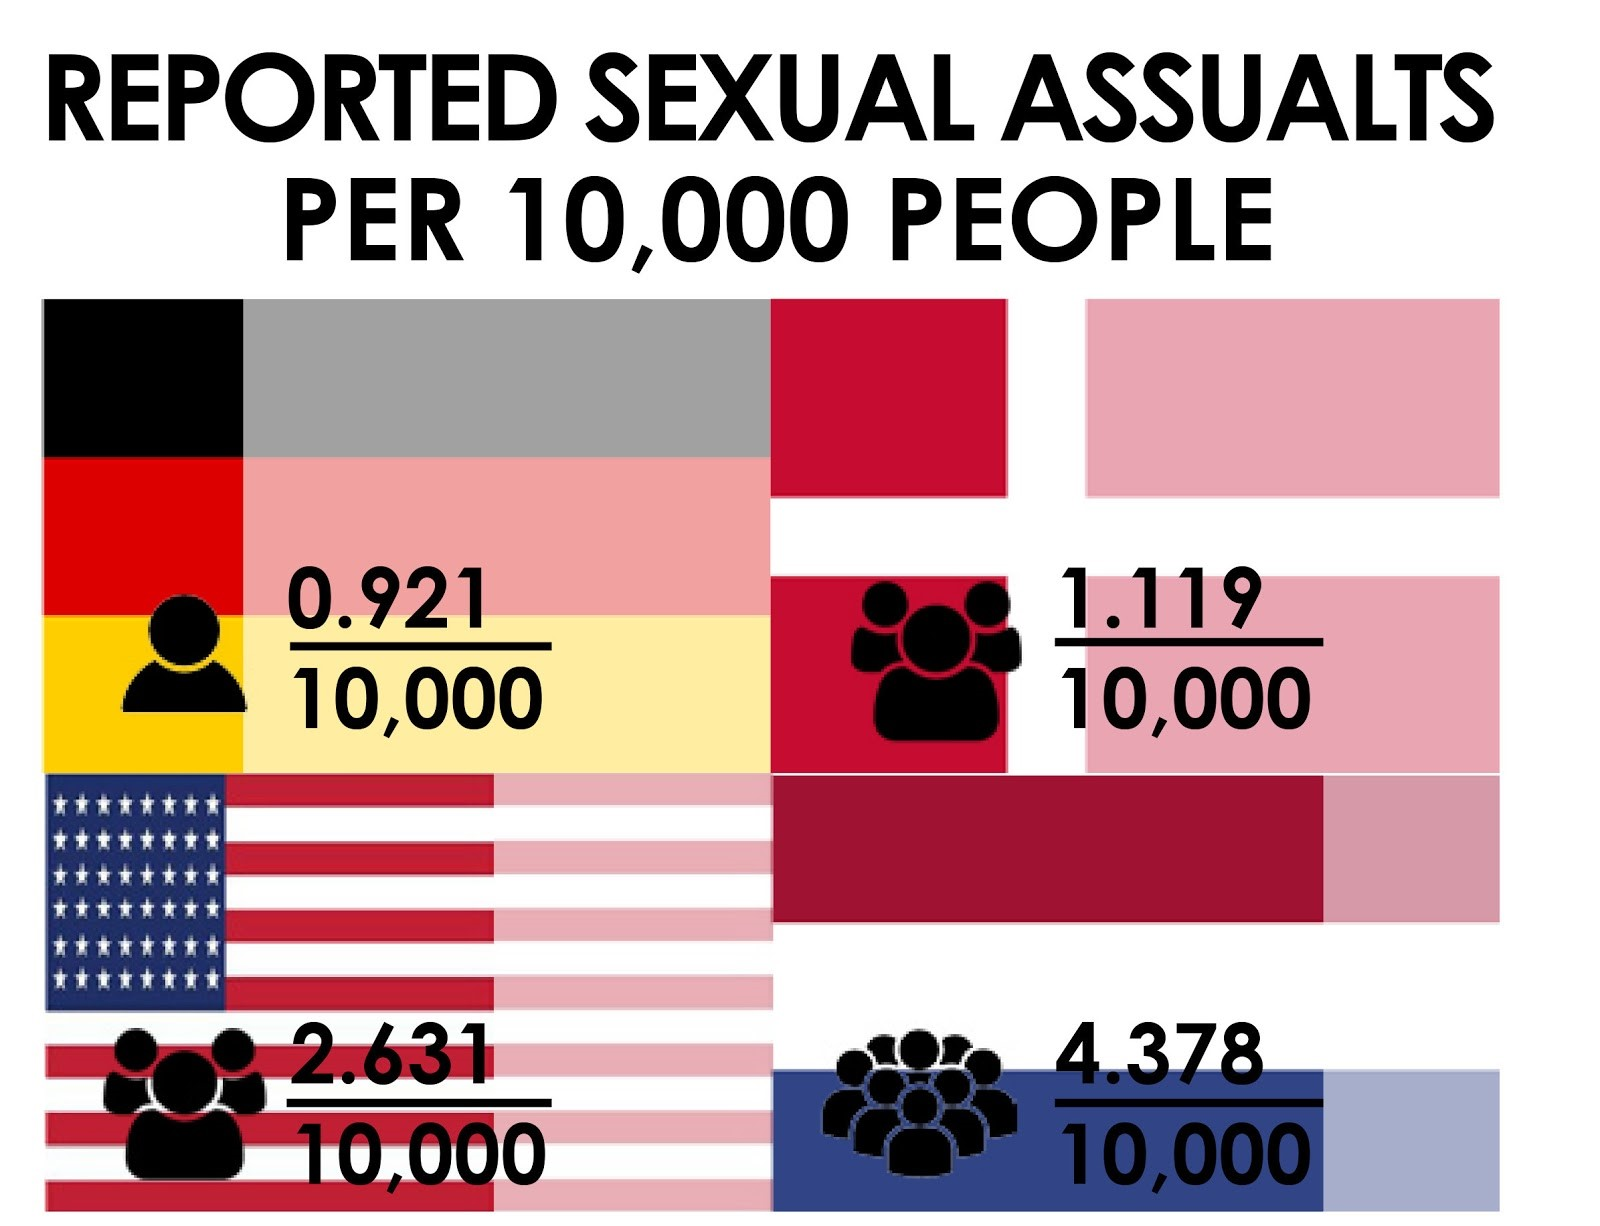 The graph above depicts the number reported sexual assault cases from Germany, Denmark, the United States and the Netherlands. The United States statistics are according to the Federal Bureau of Investigation's findings in 2014. The German statistics are according to the German Statistics Portal's findings in 2014. The Netherlands statistics are according to the Netherlands Central Bureau for Statistics in 2015. The Denmark statistics are according to the Danish Crime Prevention Council's findings in 2015.